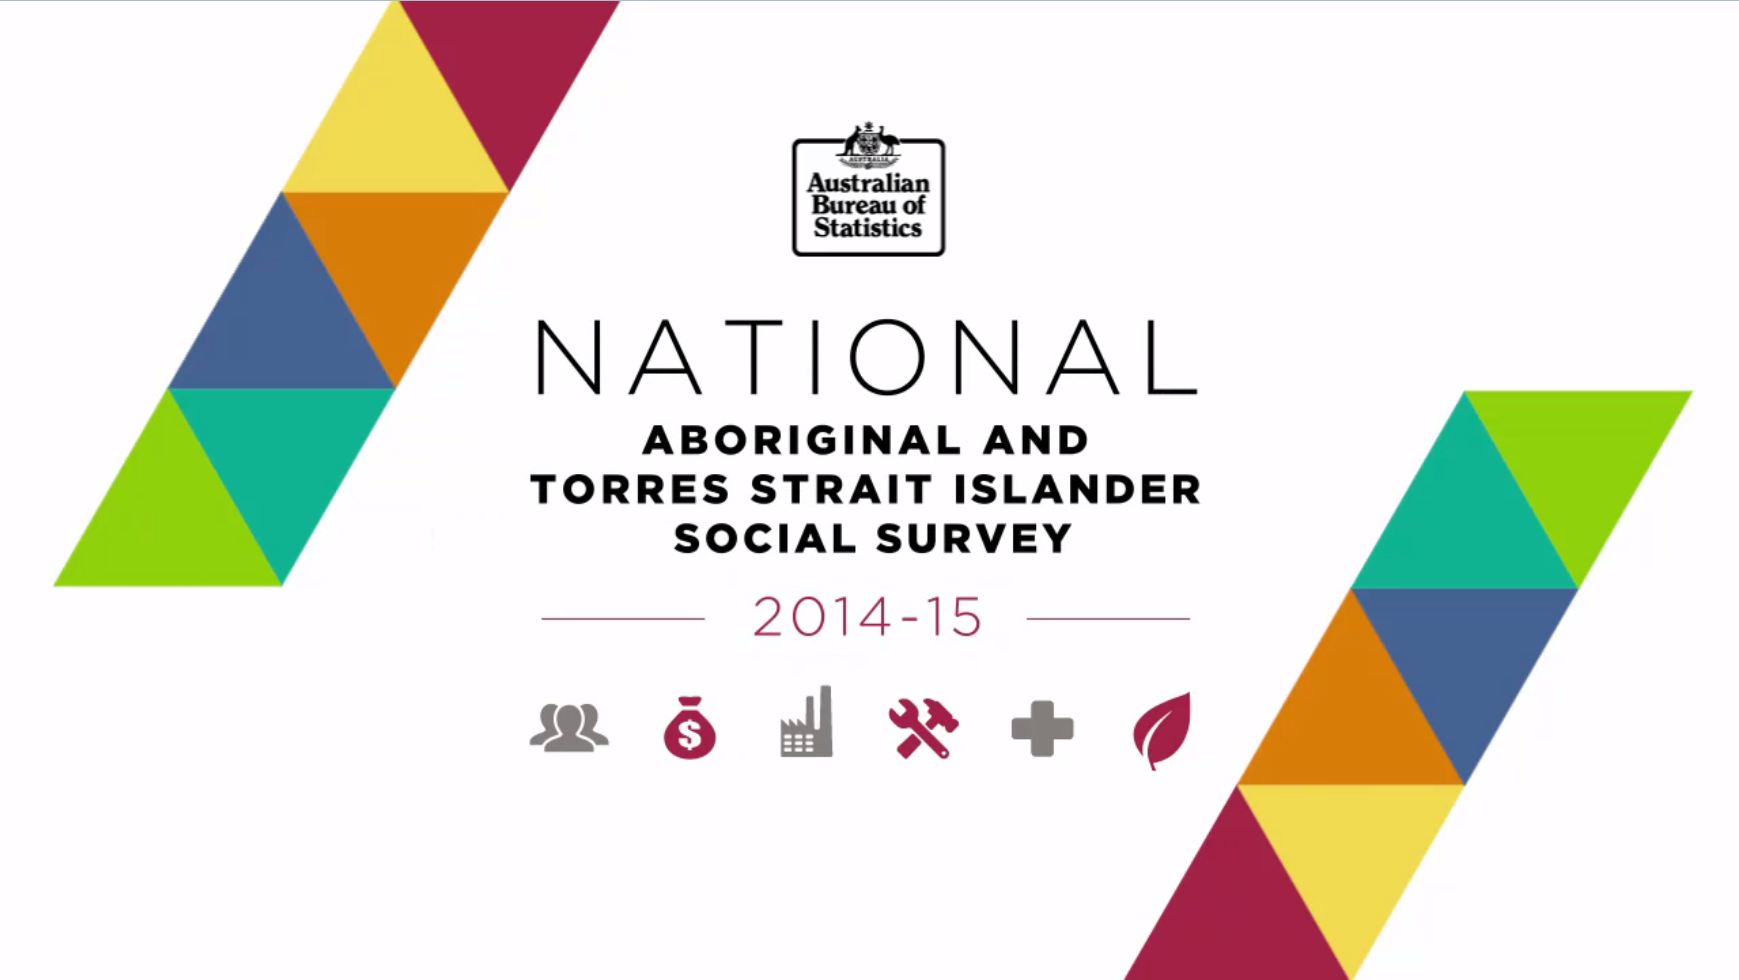 National Aboriginal And Torres Strait Islander Social Survey